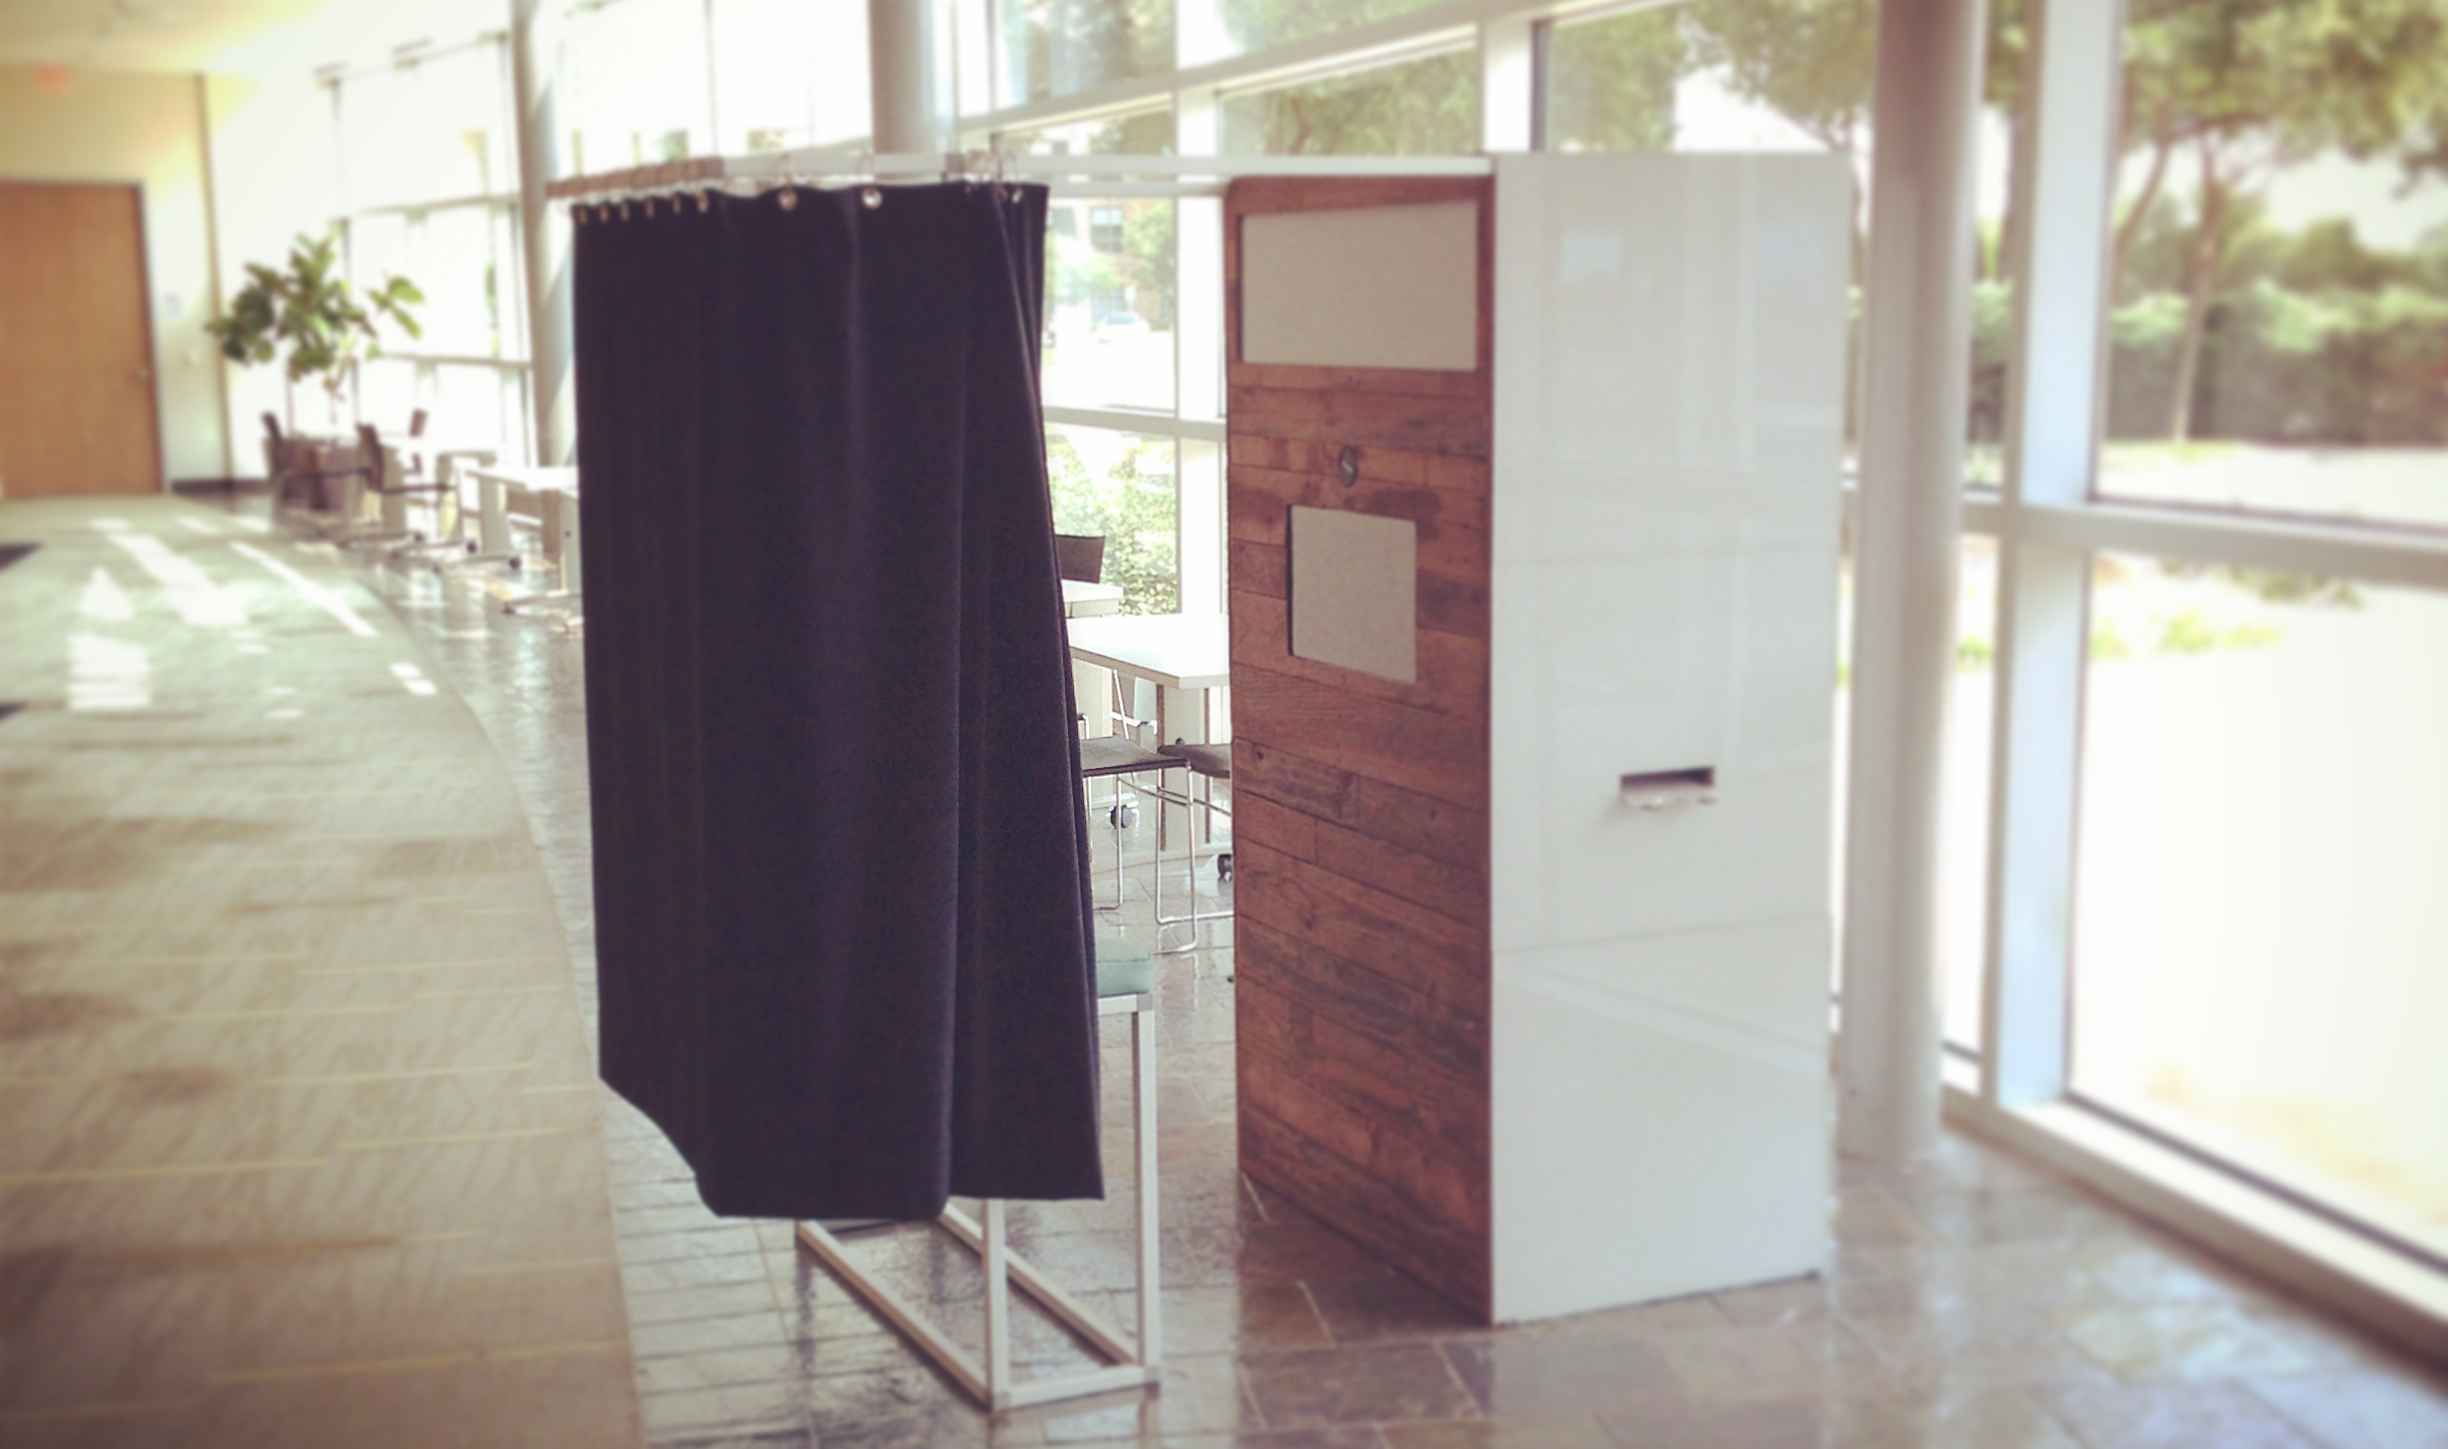 Photo Booth Rental - Where to Look